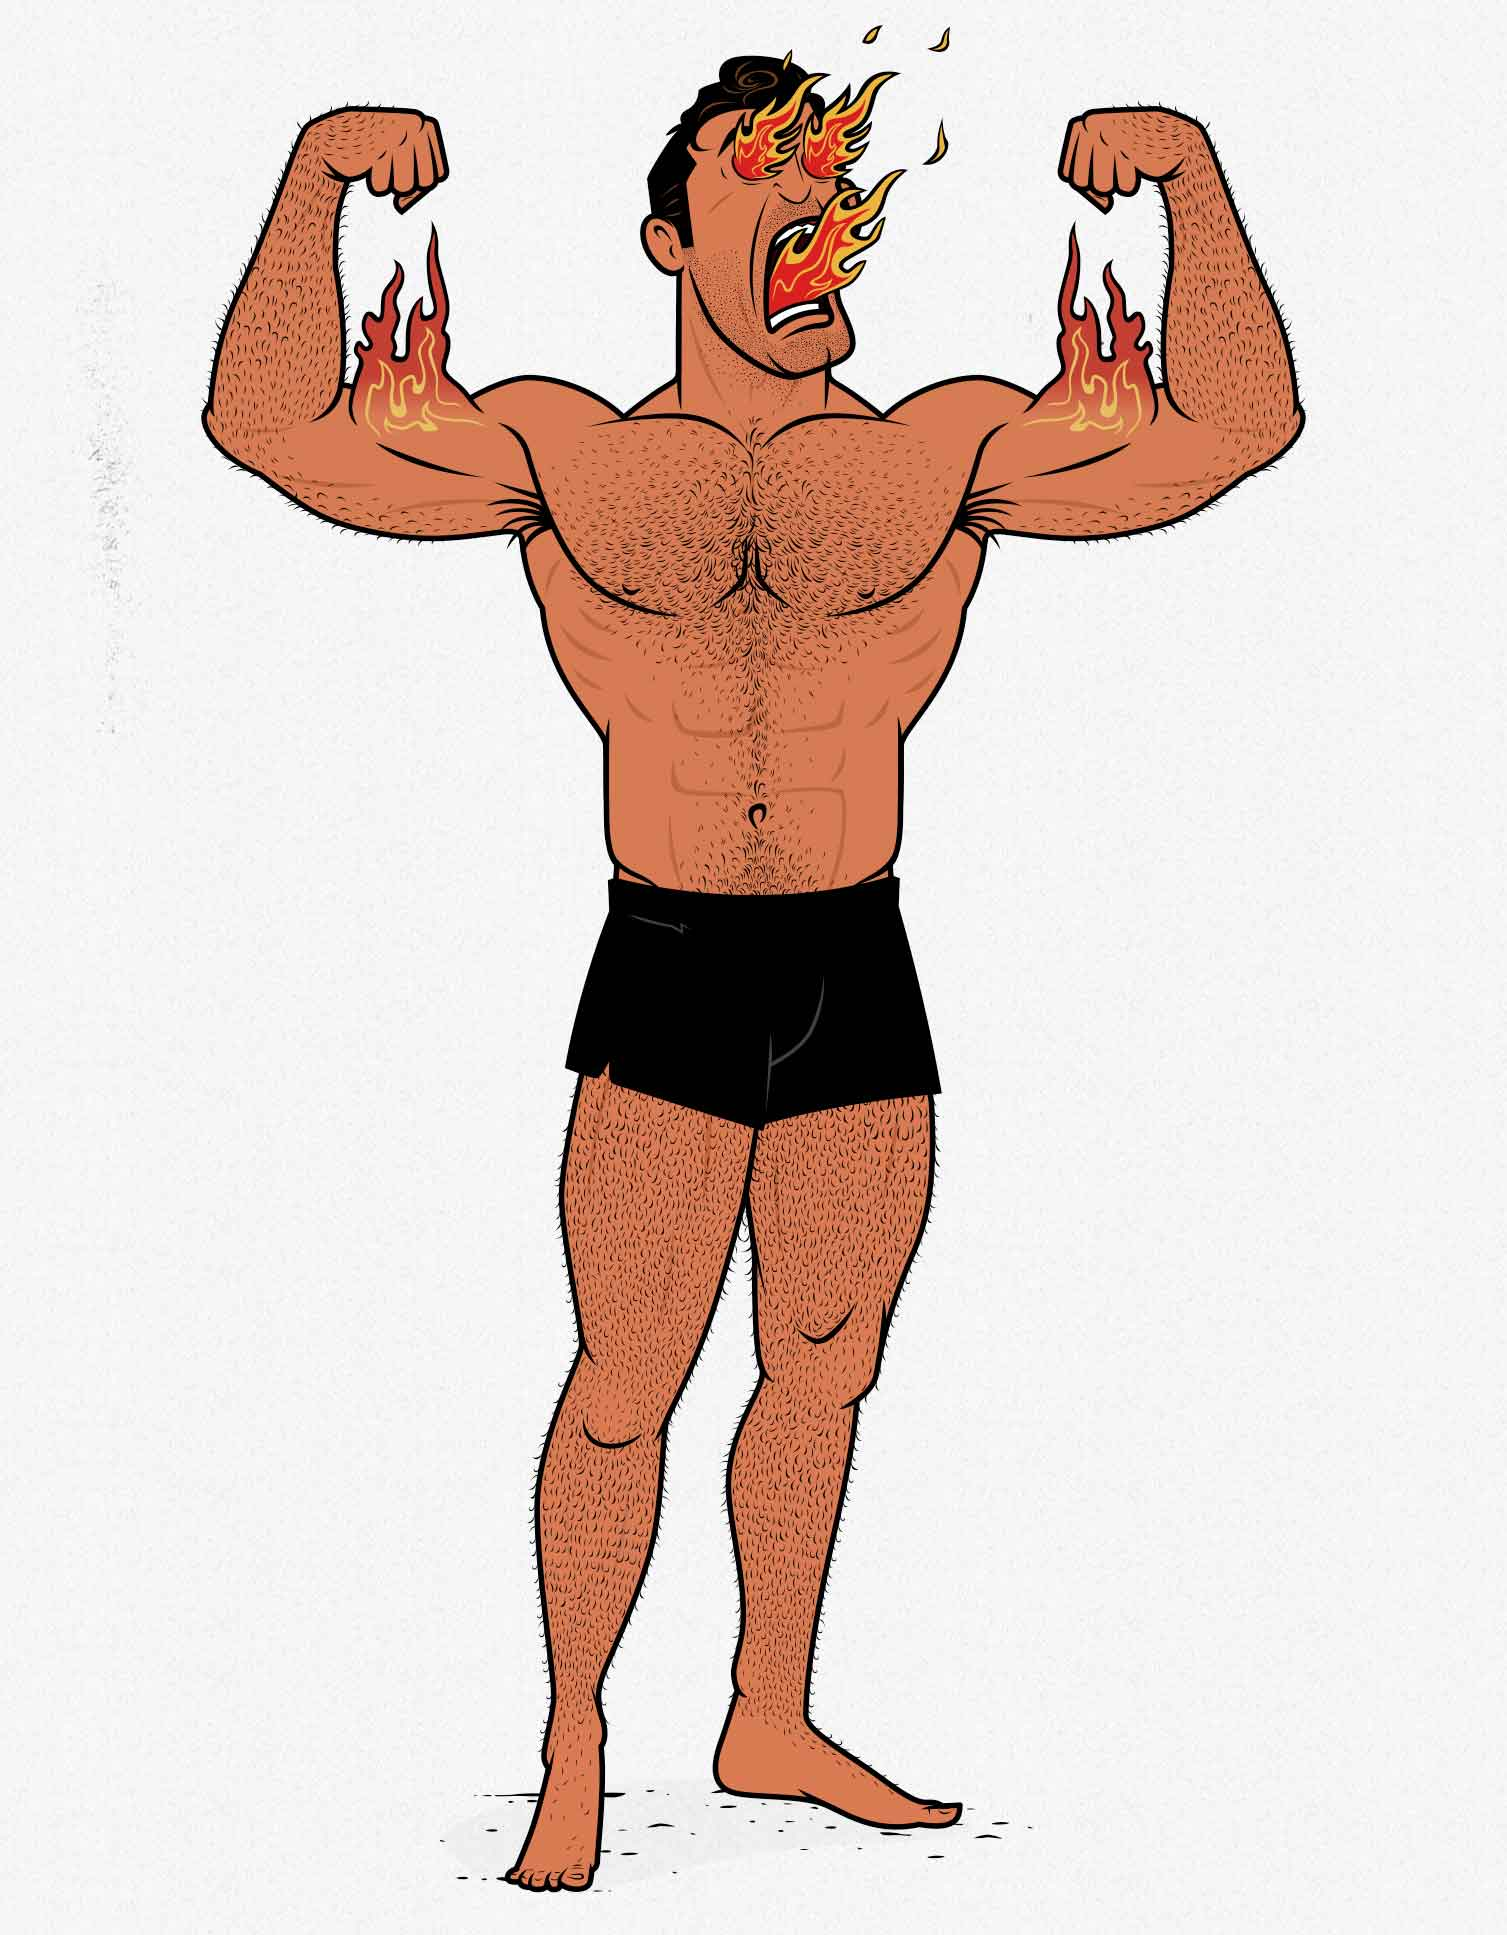 Illustration of a bodybuilder building tons of muscle.